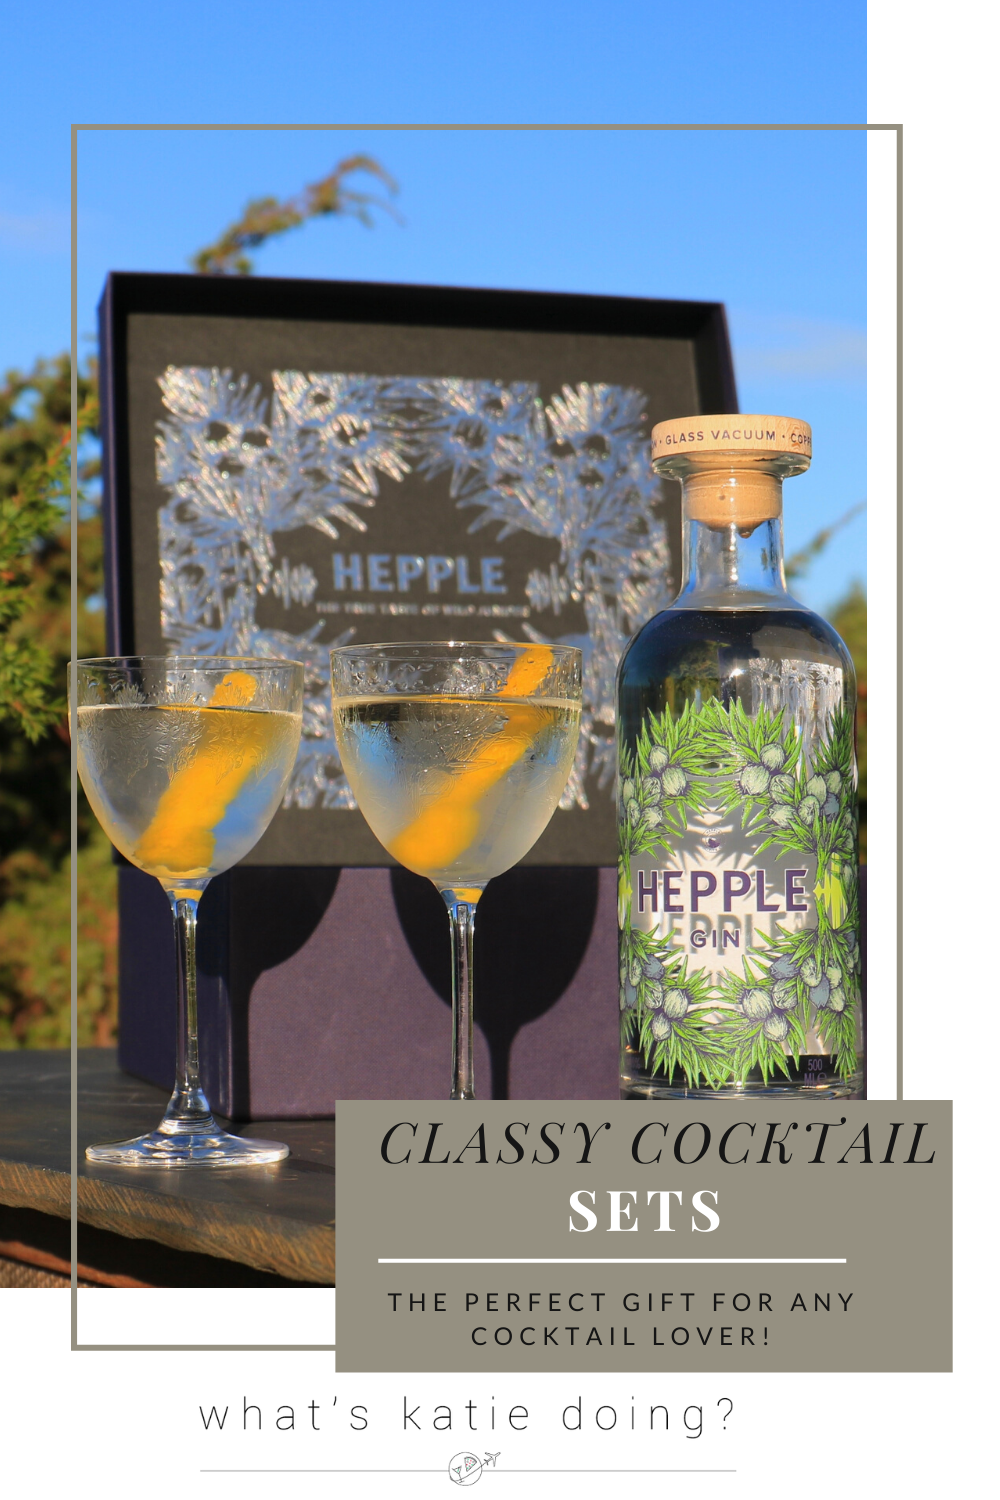 Classy Cocktail Sets - Hepple gift box